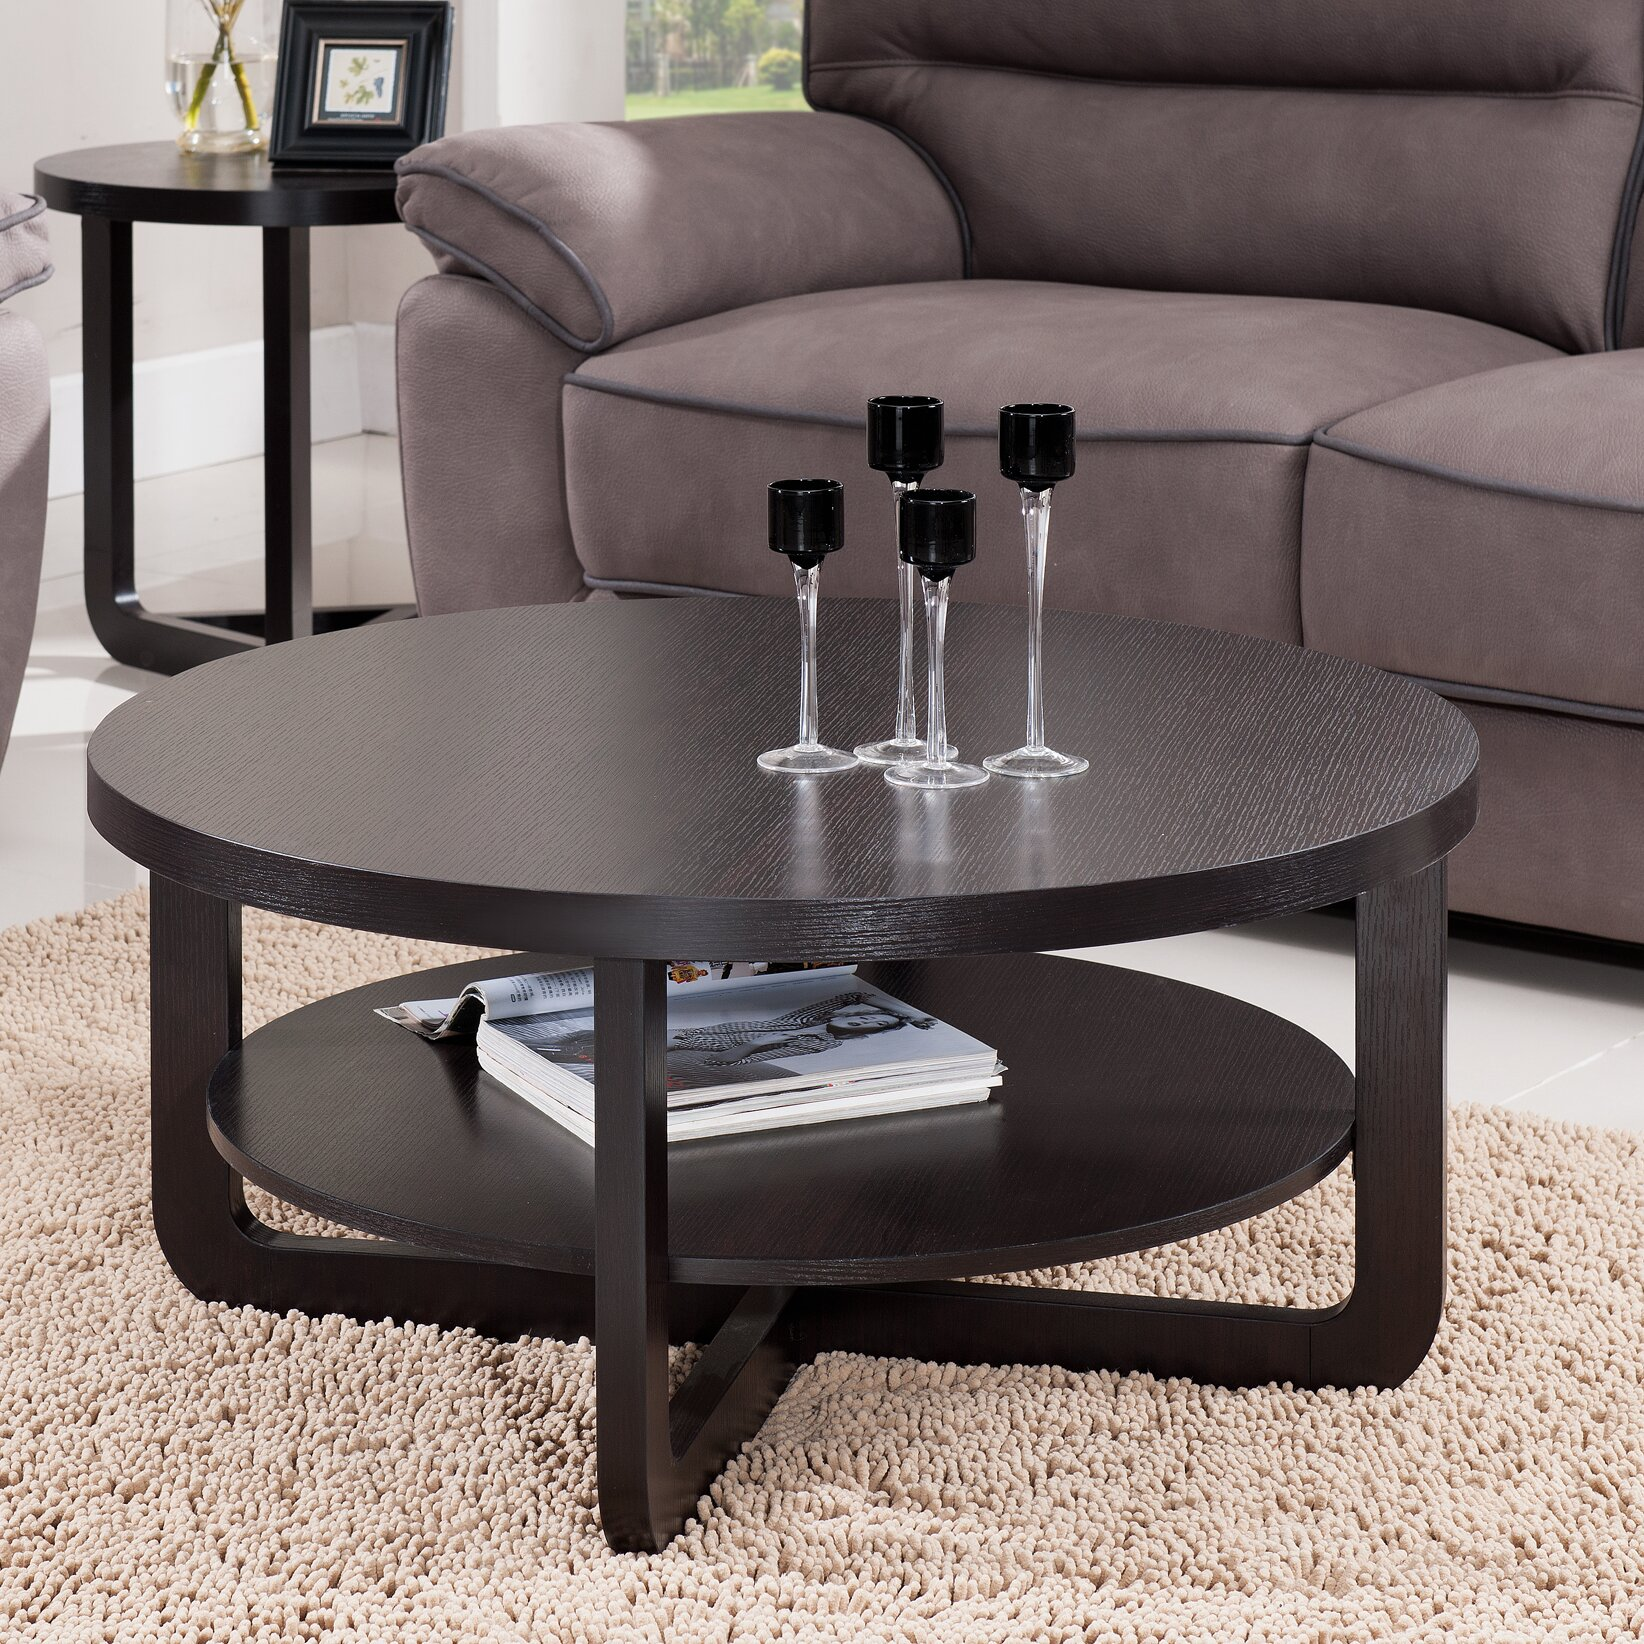 Hokku Designs Ursula Coffee Table Reviews Wayfair